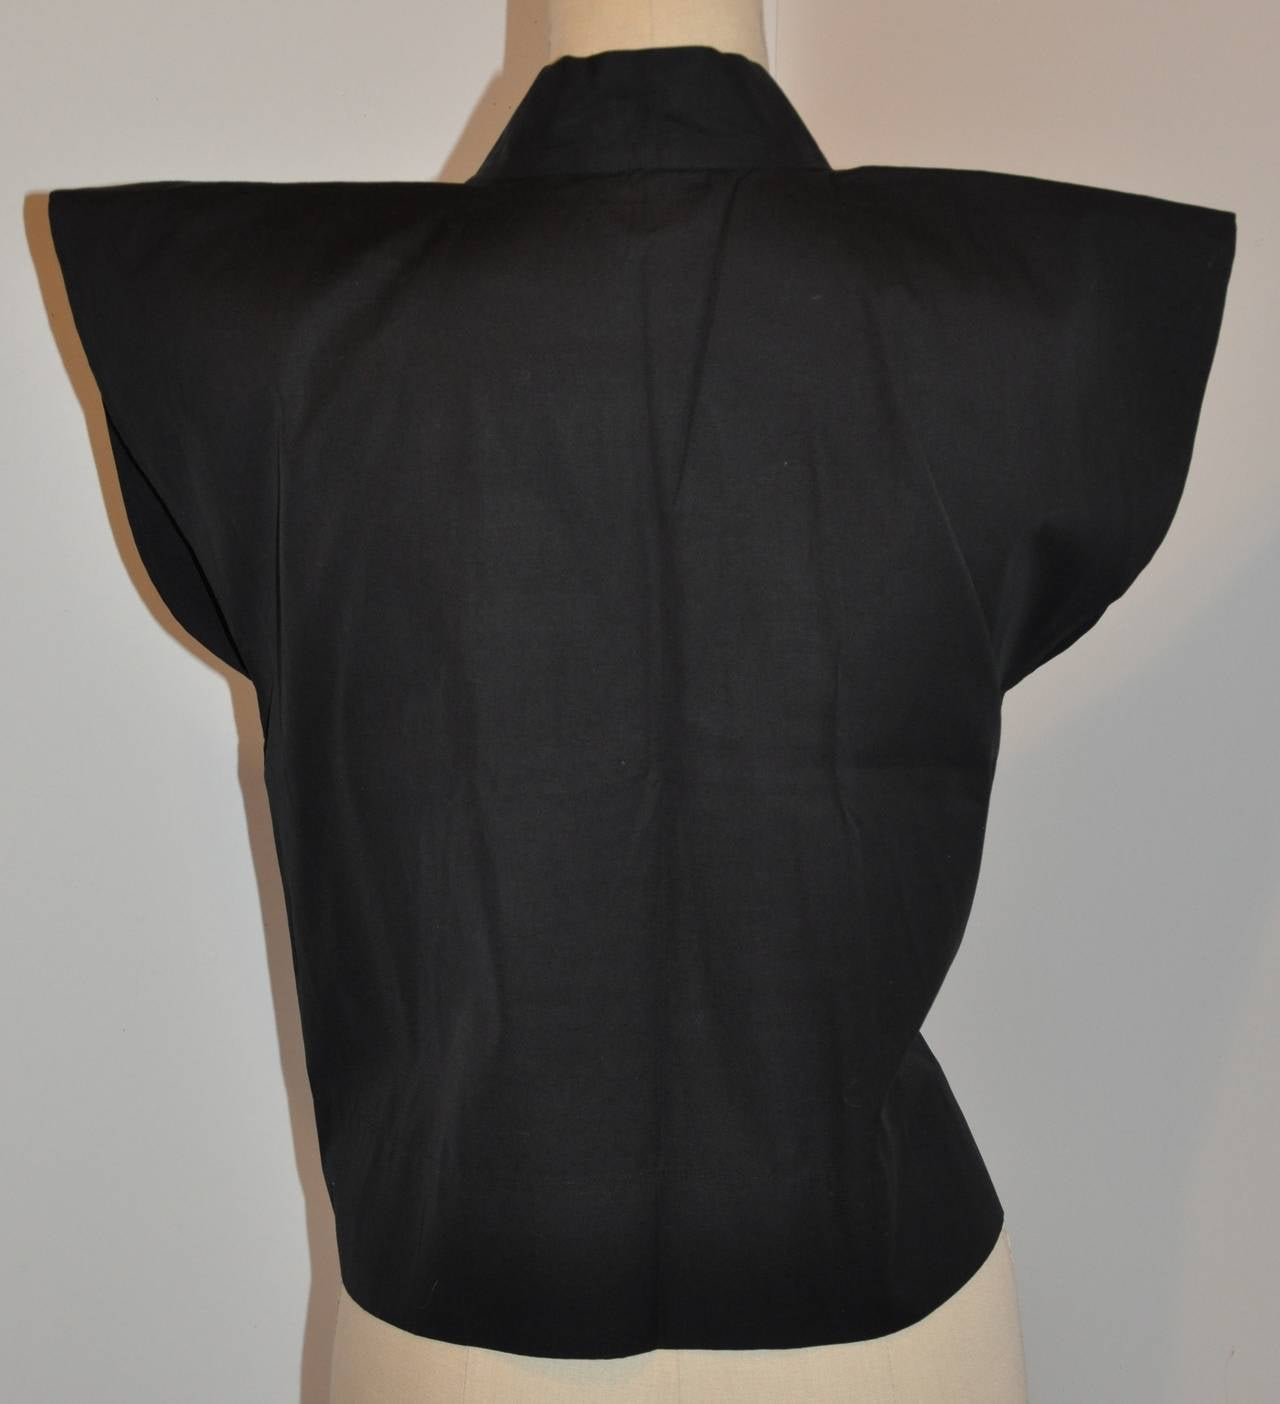 """Agnes B' 100% cotton black kimino style warp top measures 19 1/2"""" in total length. The shoulders are 6 1/2"""" with the arm circumference measuring 19 1/2"""", underarm circumference is 40"""". Sized 3/French."""